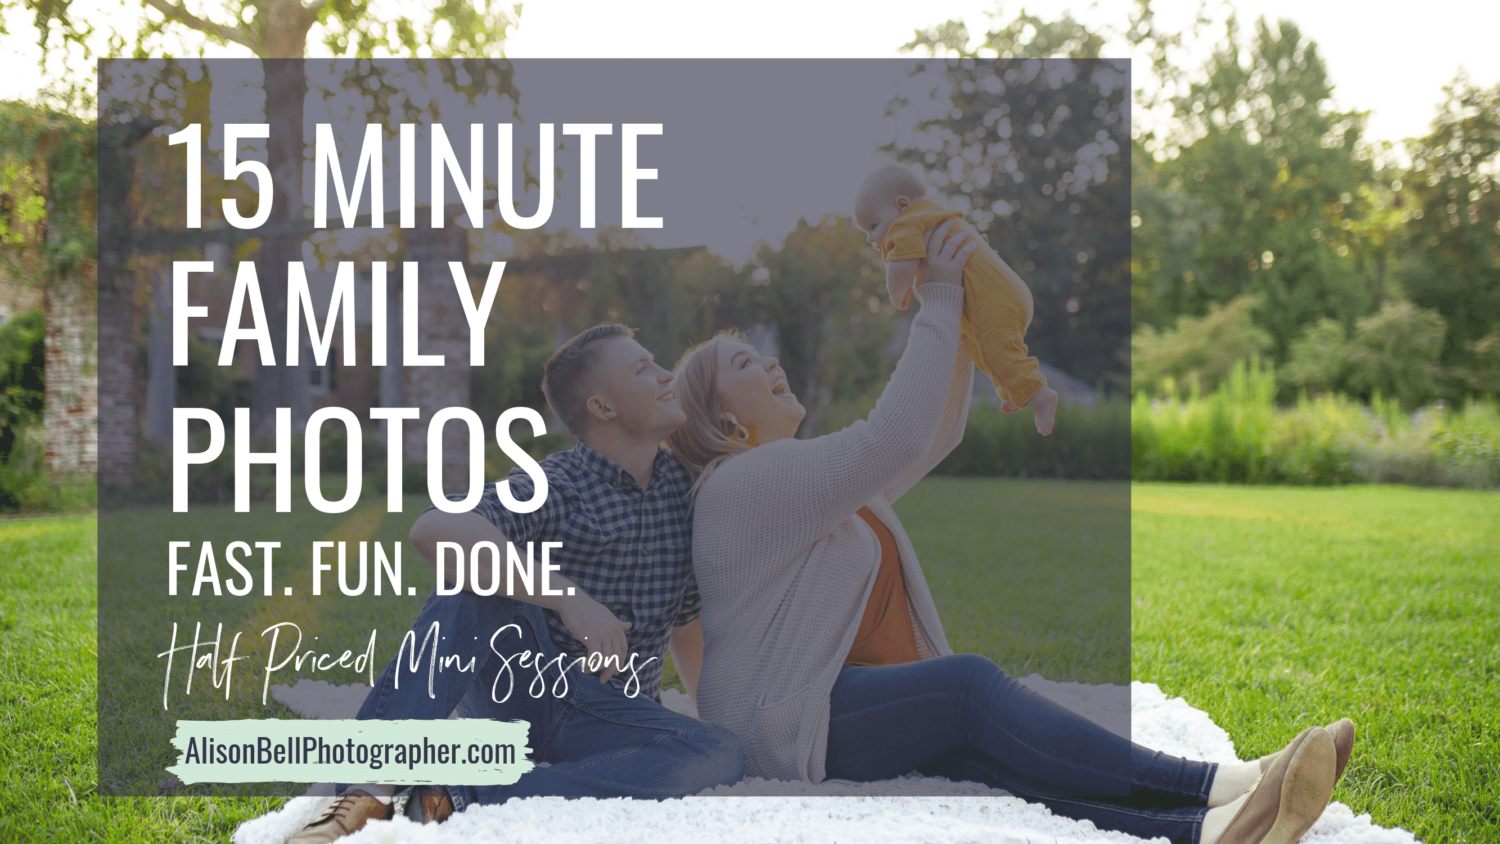 Manassas Battlefield, mini sessions, baby, child, infant, toddler, kid, family photography